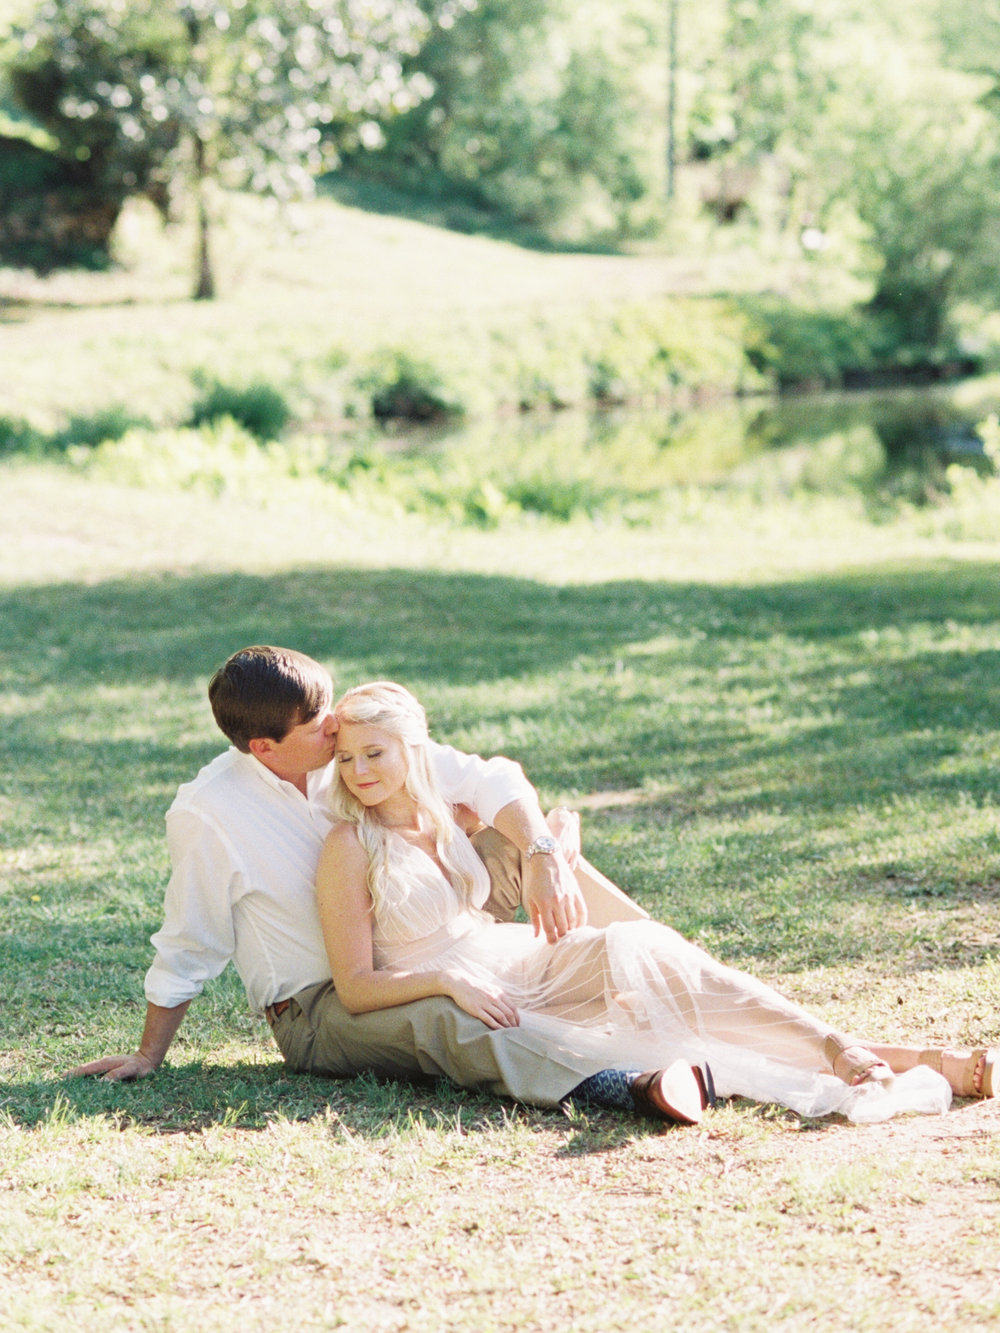 Erin_Johnny_Engagement_Dunaway_Gardens_Georgia_Film_Fallen_Photography-75.JPG